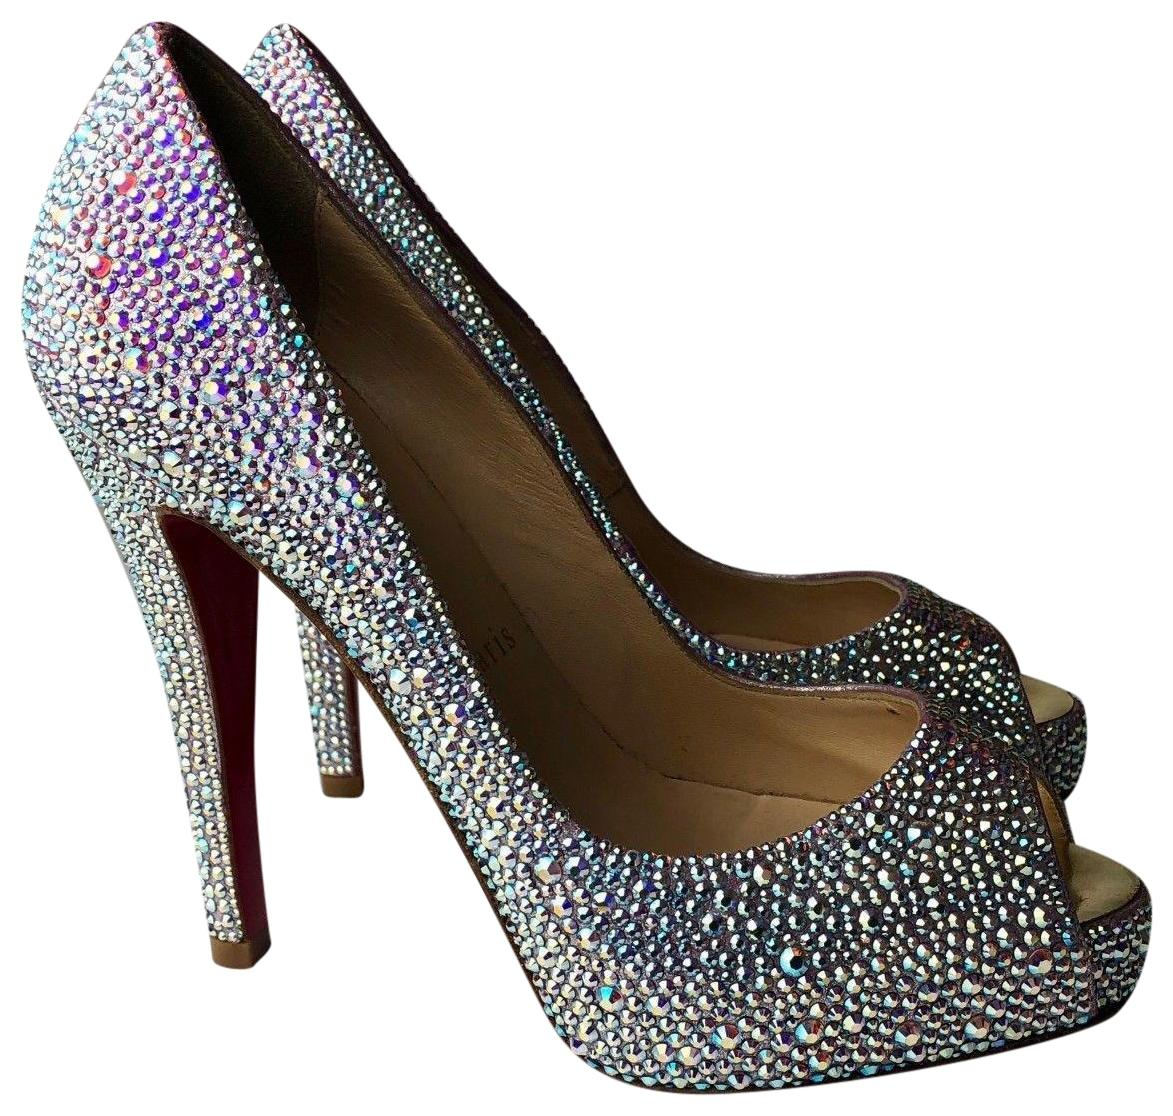 Christian Louboutin Silver Very Prive 120 Aurora Boreale Swarovski Strass Pumps Size EU 36 (Approx. US 6) Regular (M, B)